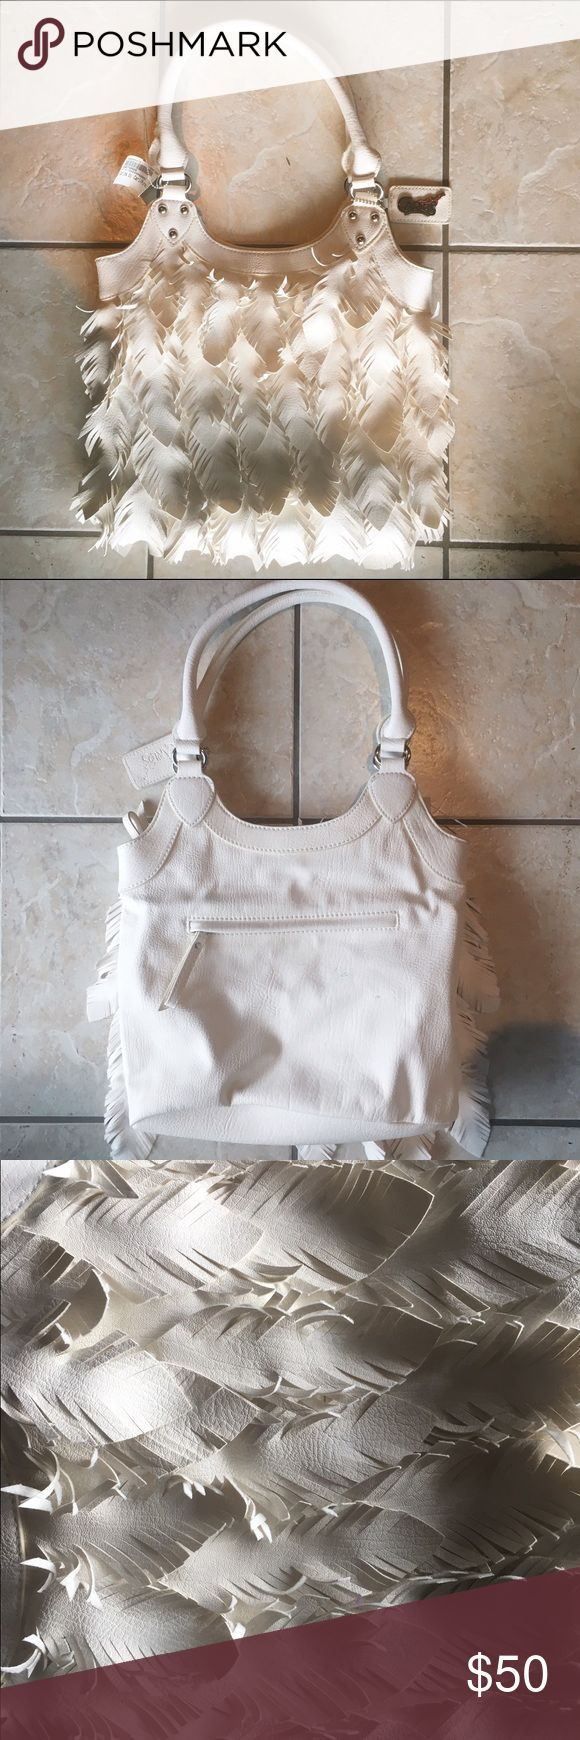 Carlos Santana White Feather Purse NWOT Never used, no rips or stains, very sturdy purse. Interior is a black and white polka dot. Unique feathers are individually cut and flow off of the handbag, looks beautiful! Carlos Santana Bags Totes